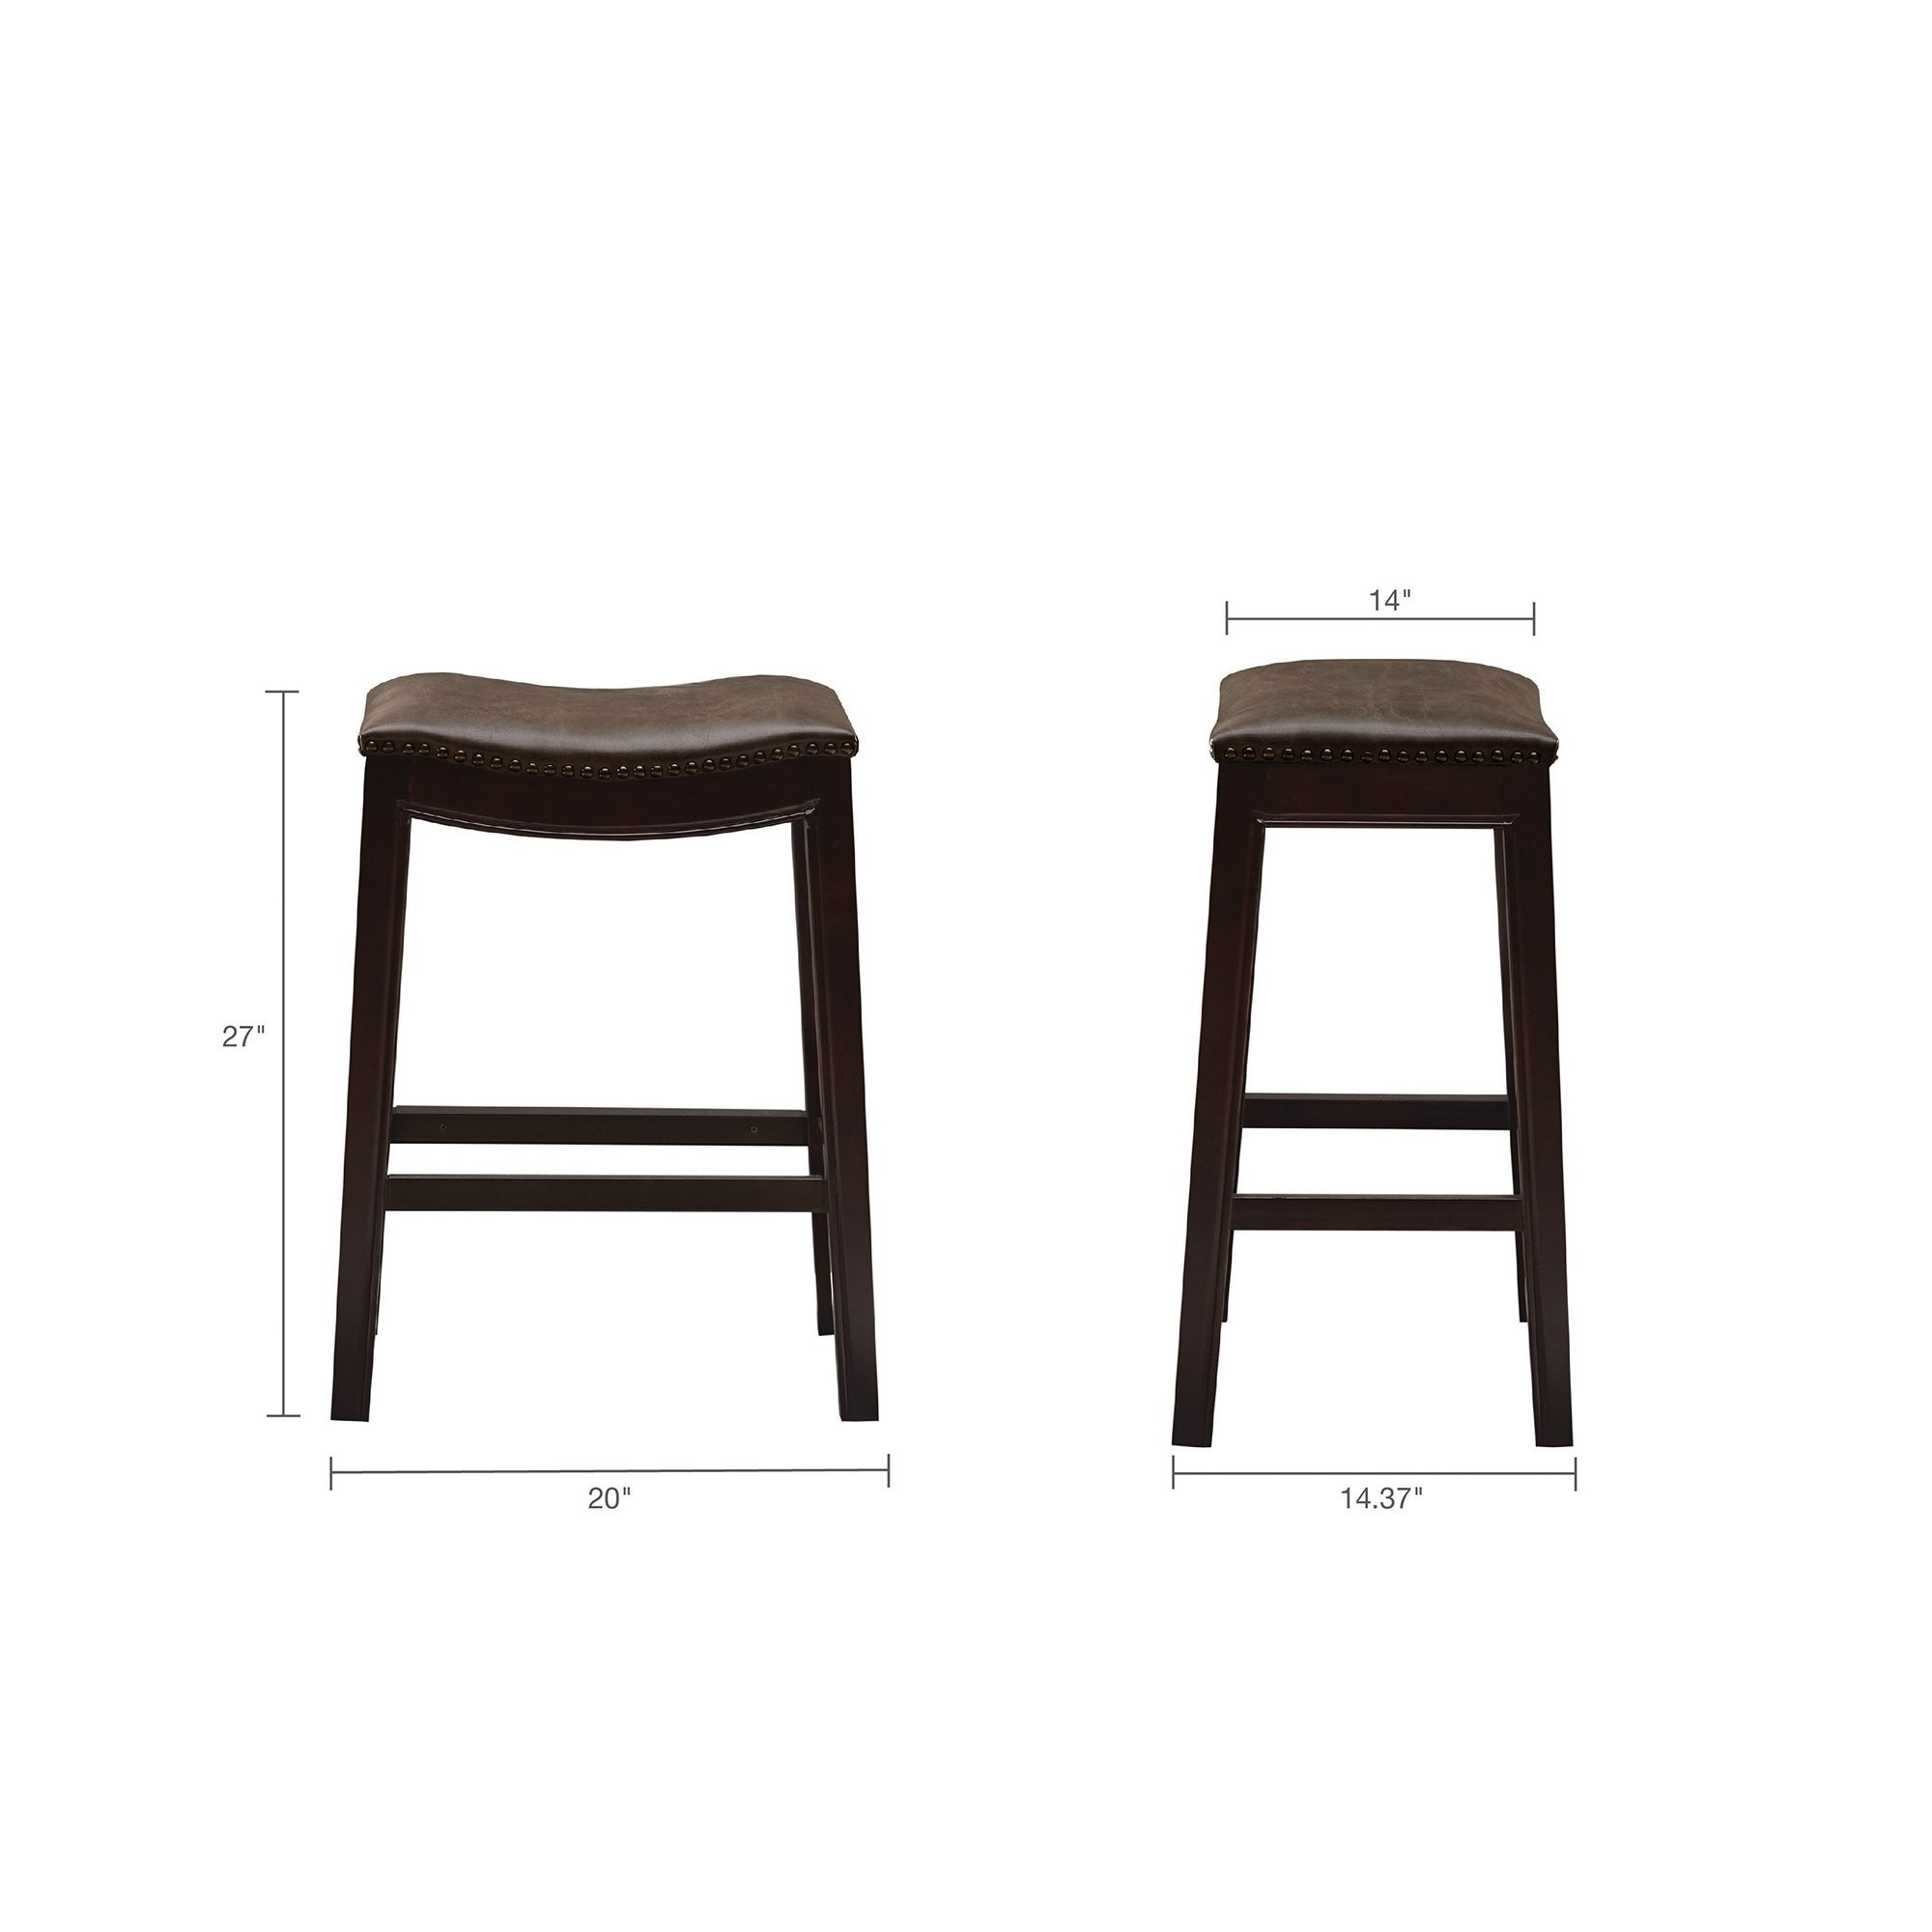 Madison Park Nomad 9 inch Counter Stool   Overstock   9